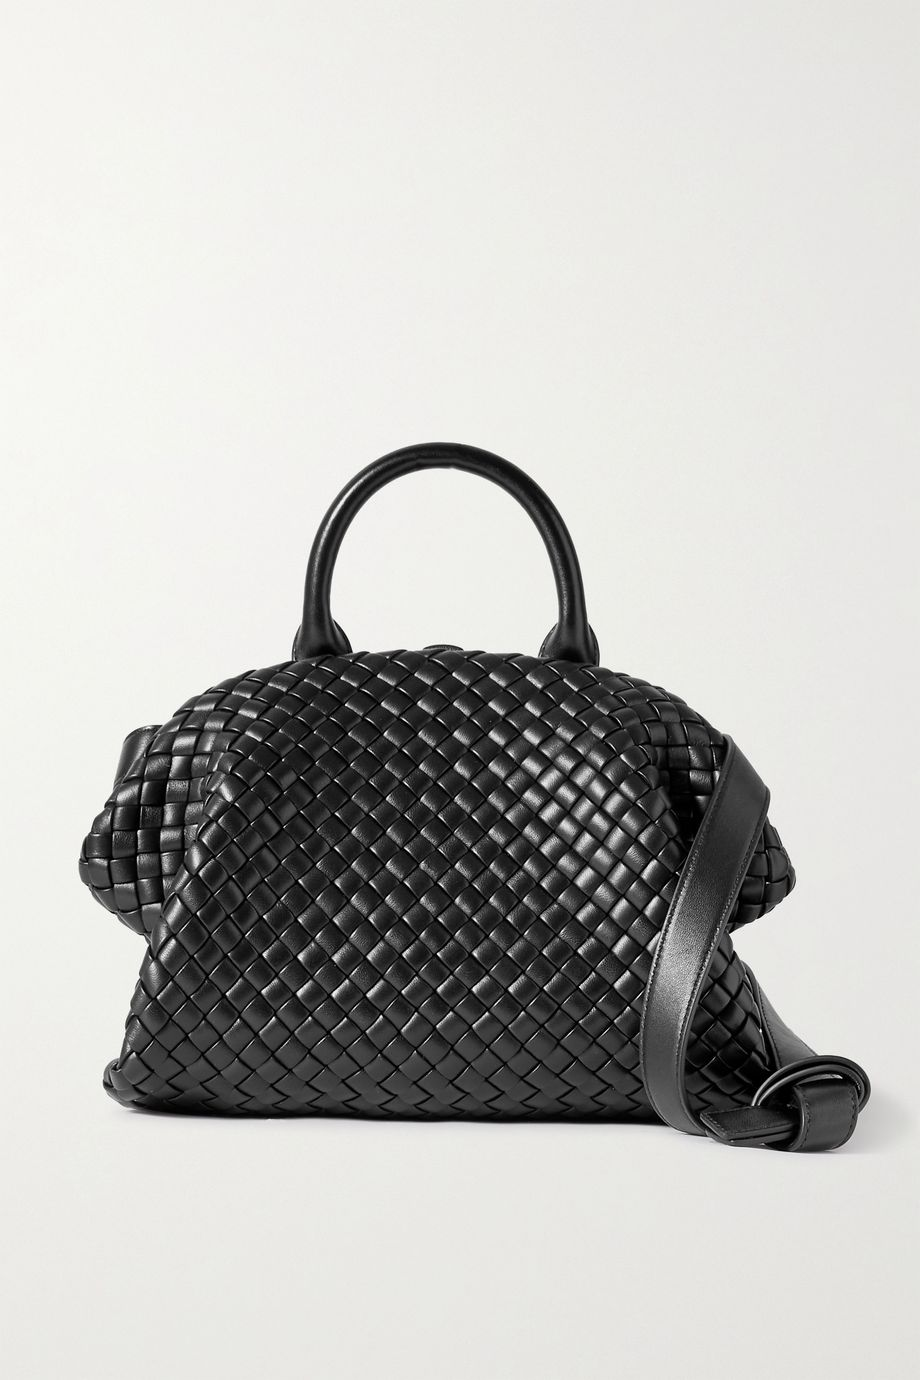 Bottega Veneta The Handle small intrecciato leather tote